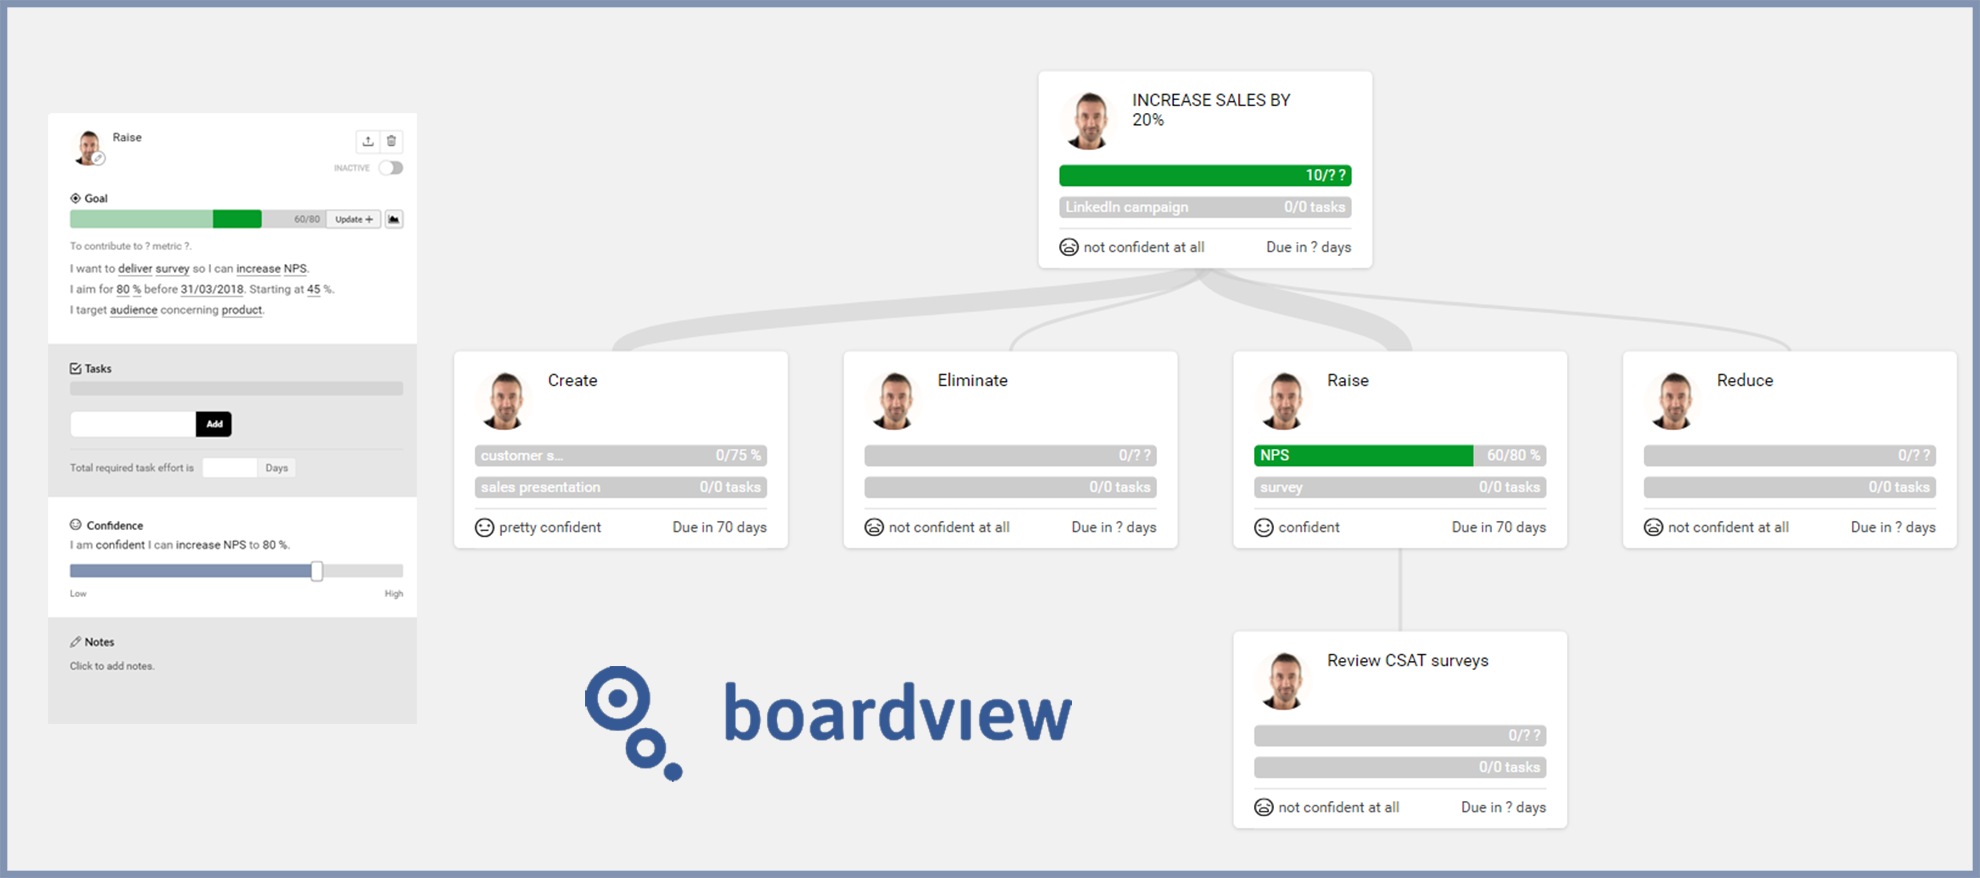 Creating an account management strategy couldn't be easier with boardview